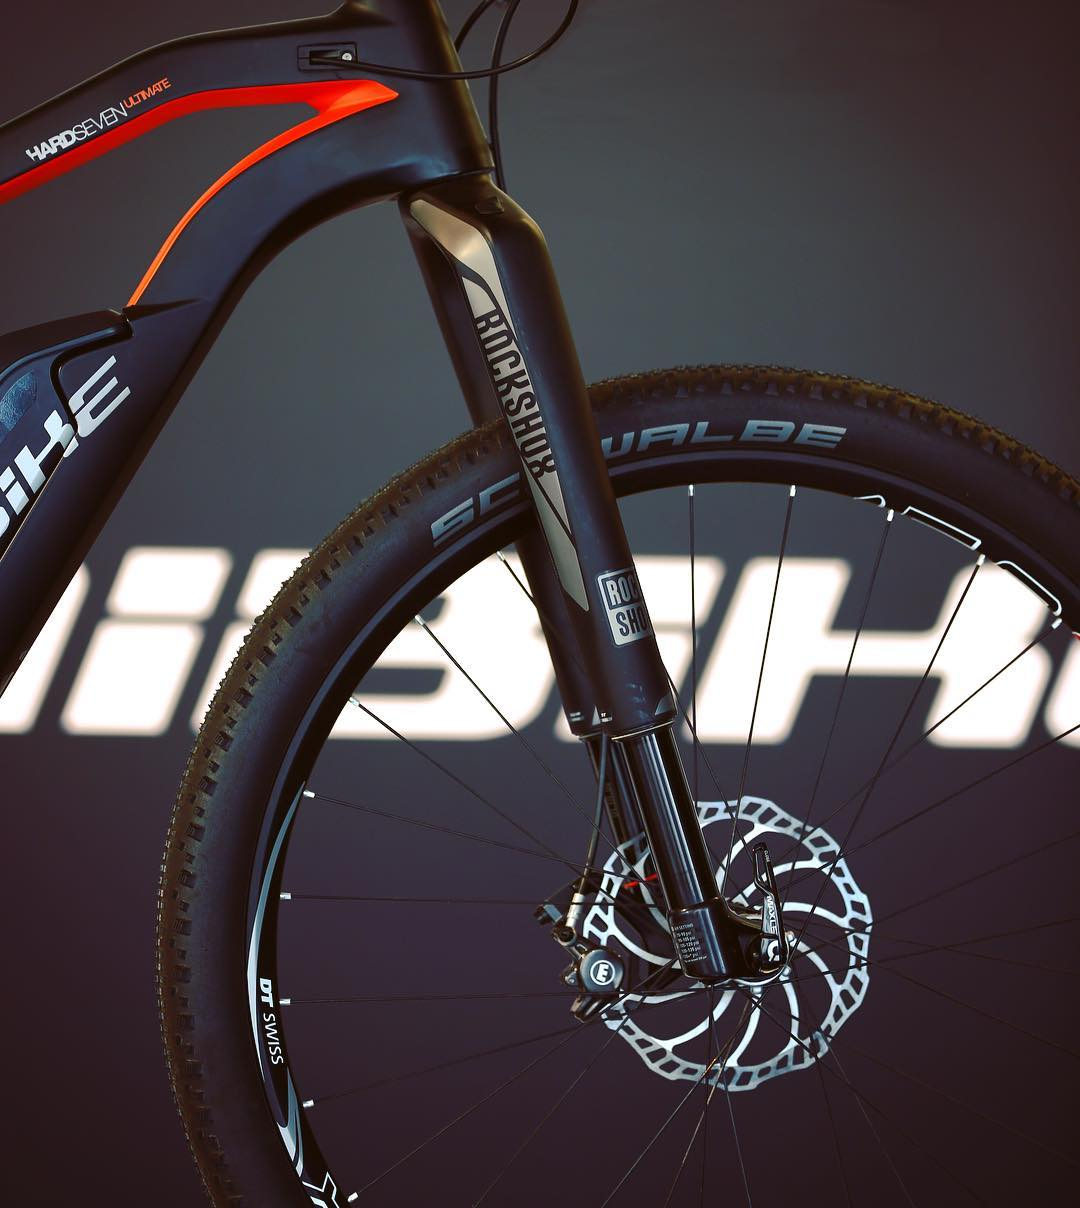 The #Haibike #hardseven ultimate. Full carbon fibre! #rs1 #emtb #mtb #xc